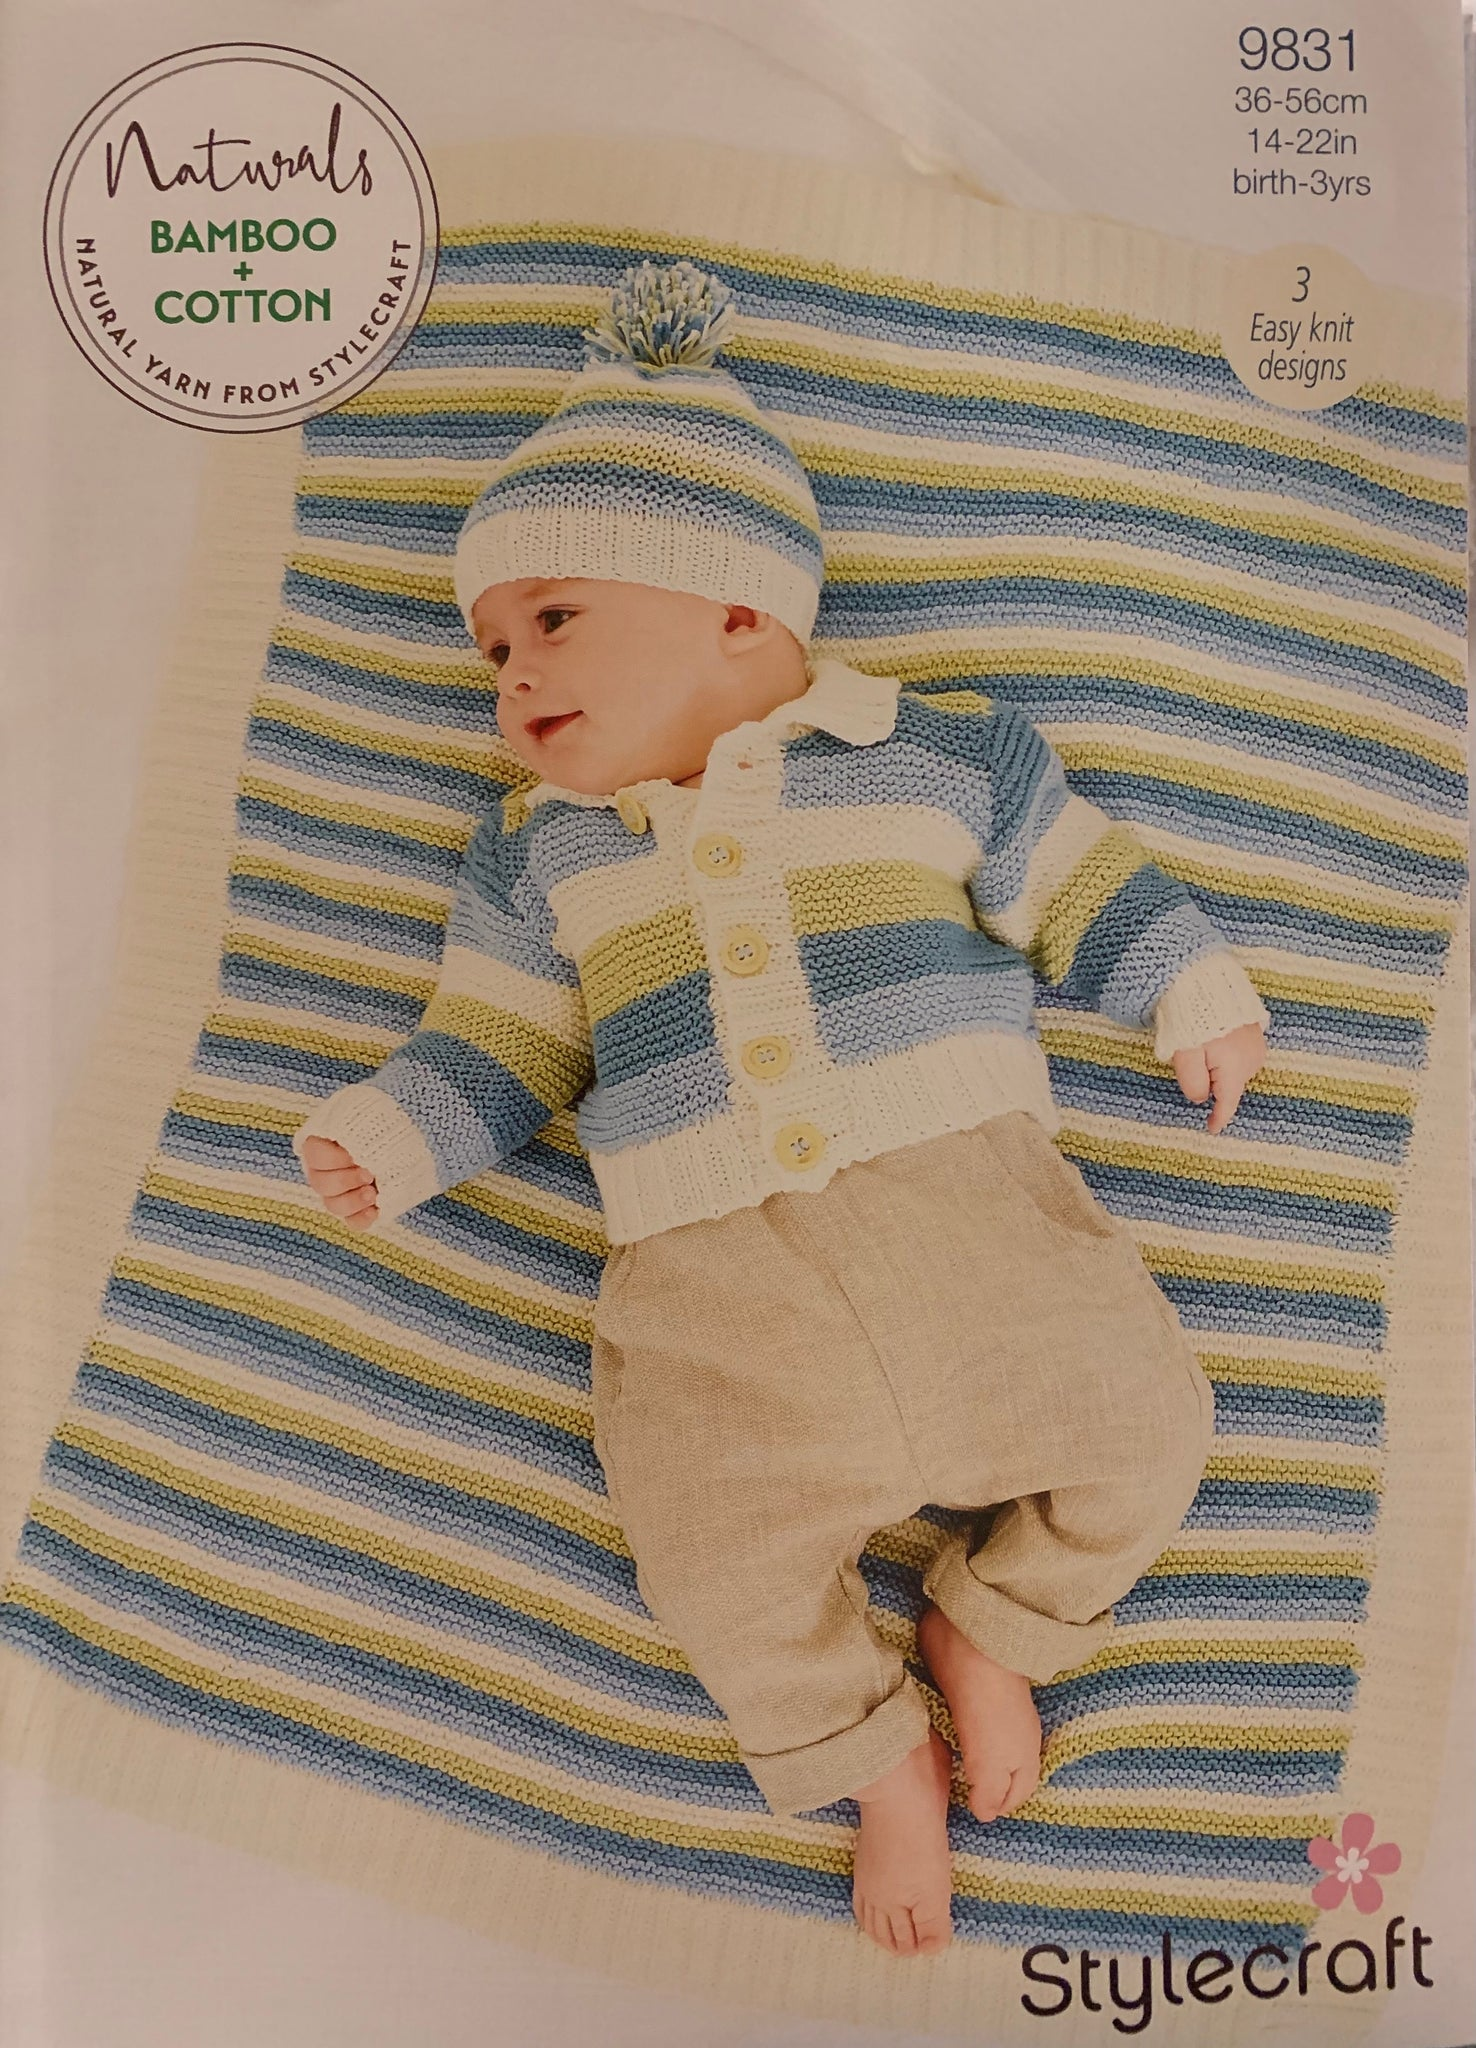 9831 Stylecraft Naturals bamboo and cotton baby jacket, hat and blanket knitting pattern